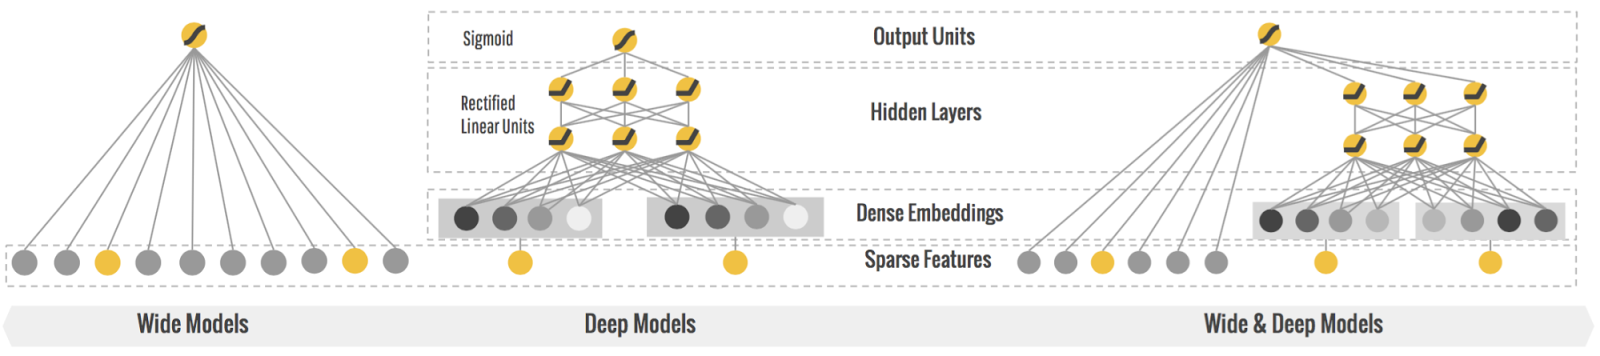 Wide & Deep Learning: Better Together with TensorFlow